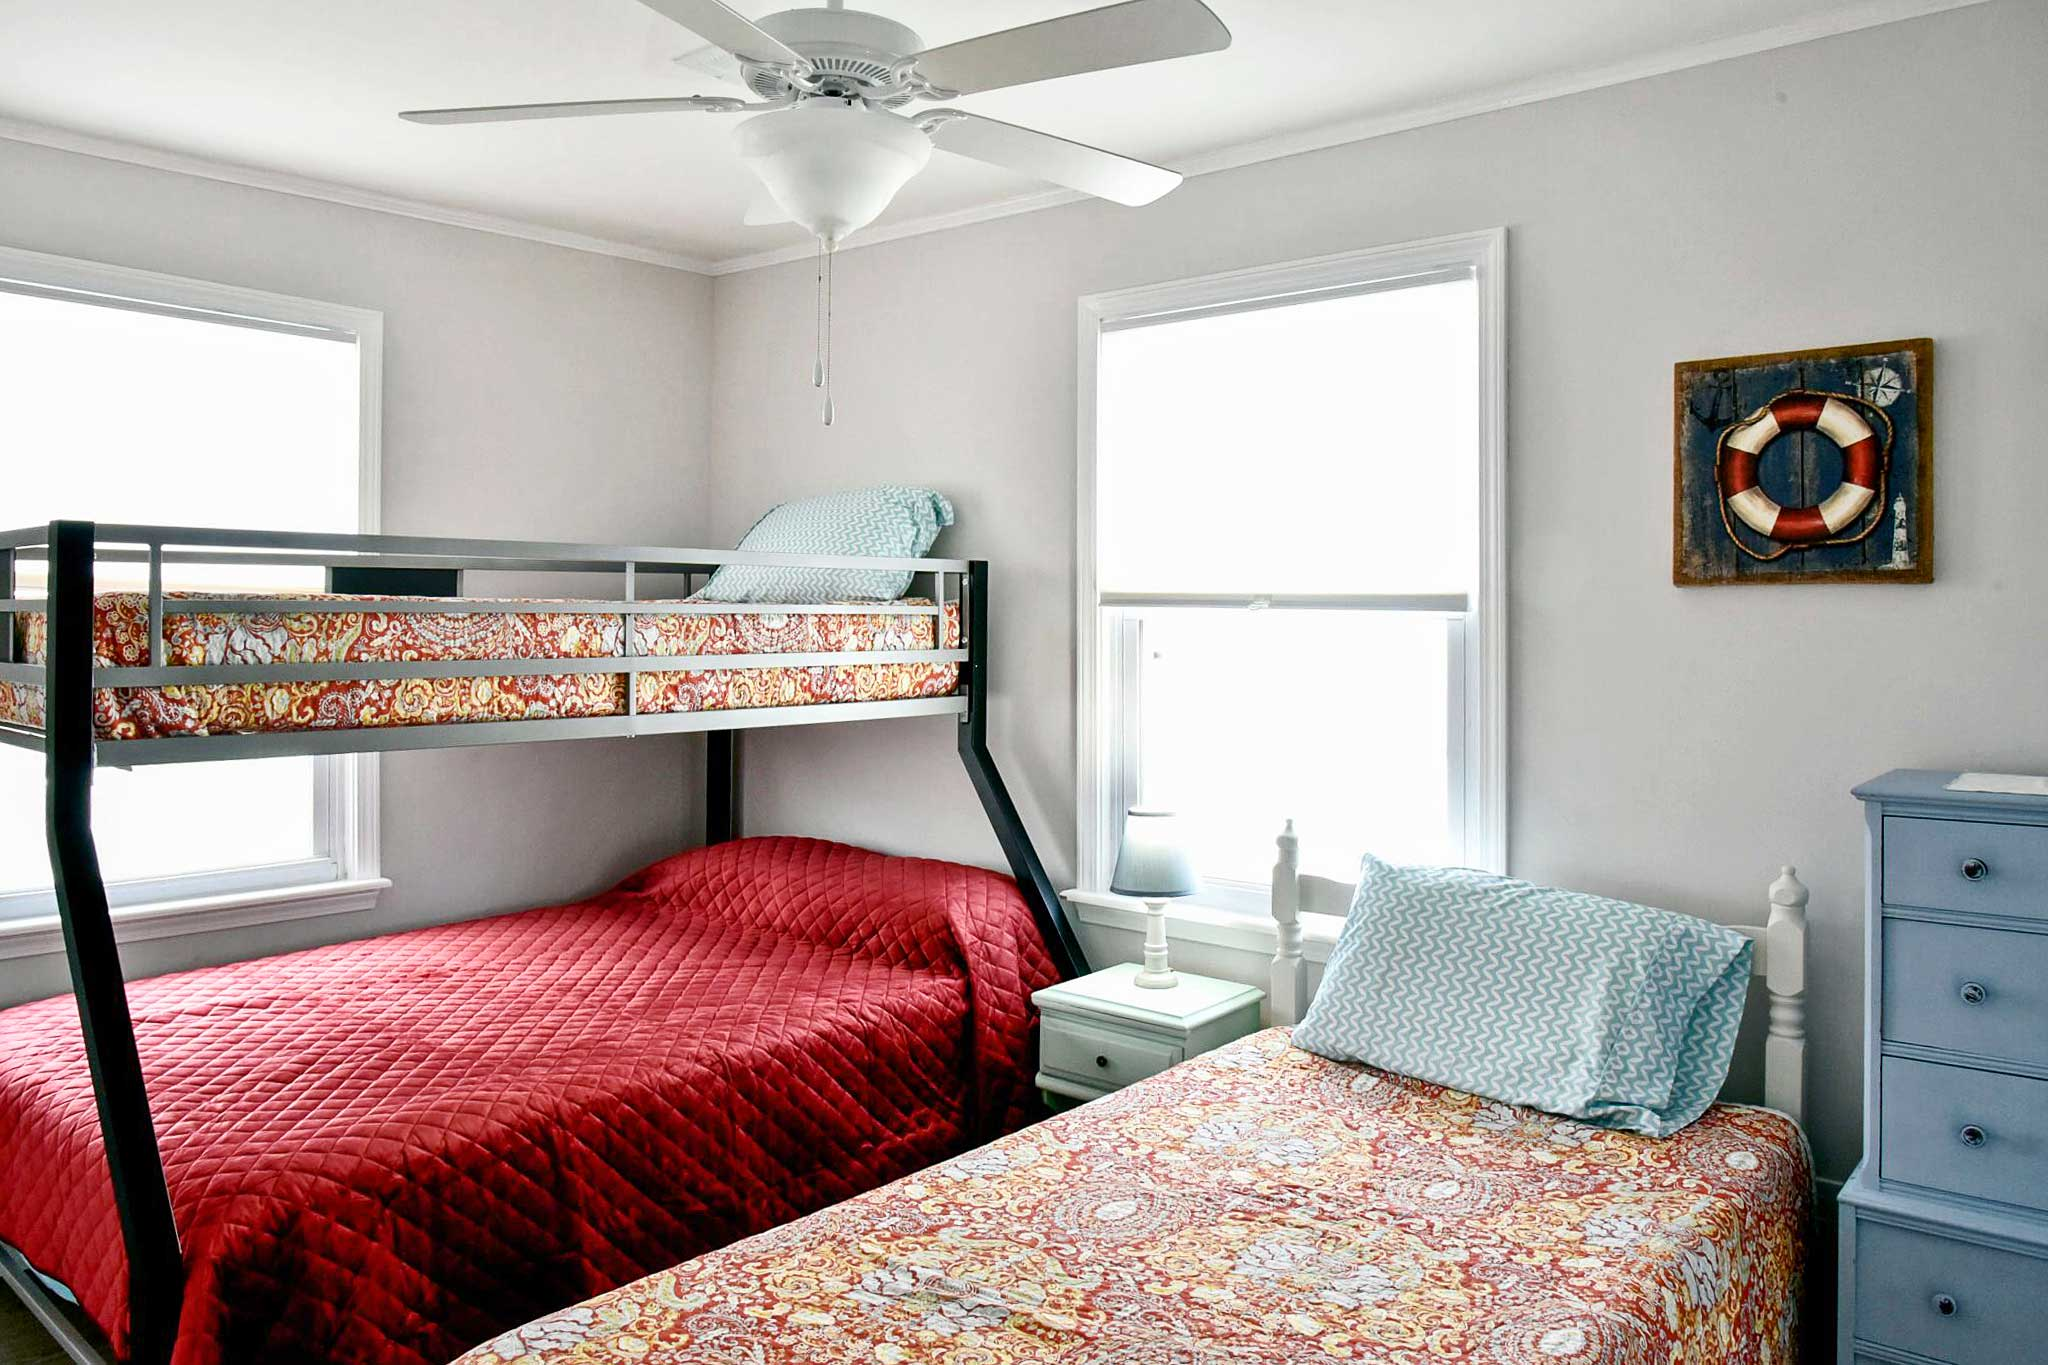 Kids will love sharing this bunk room!